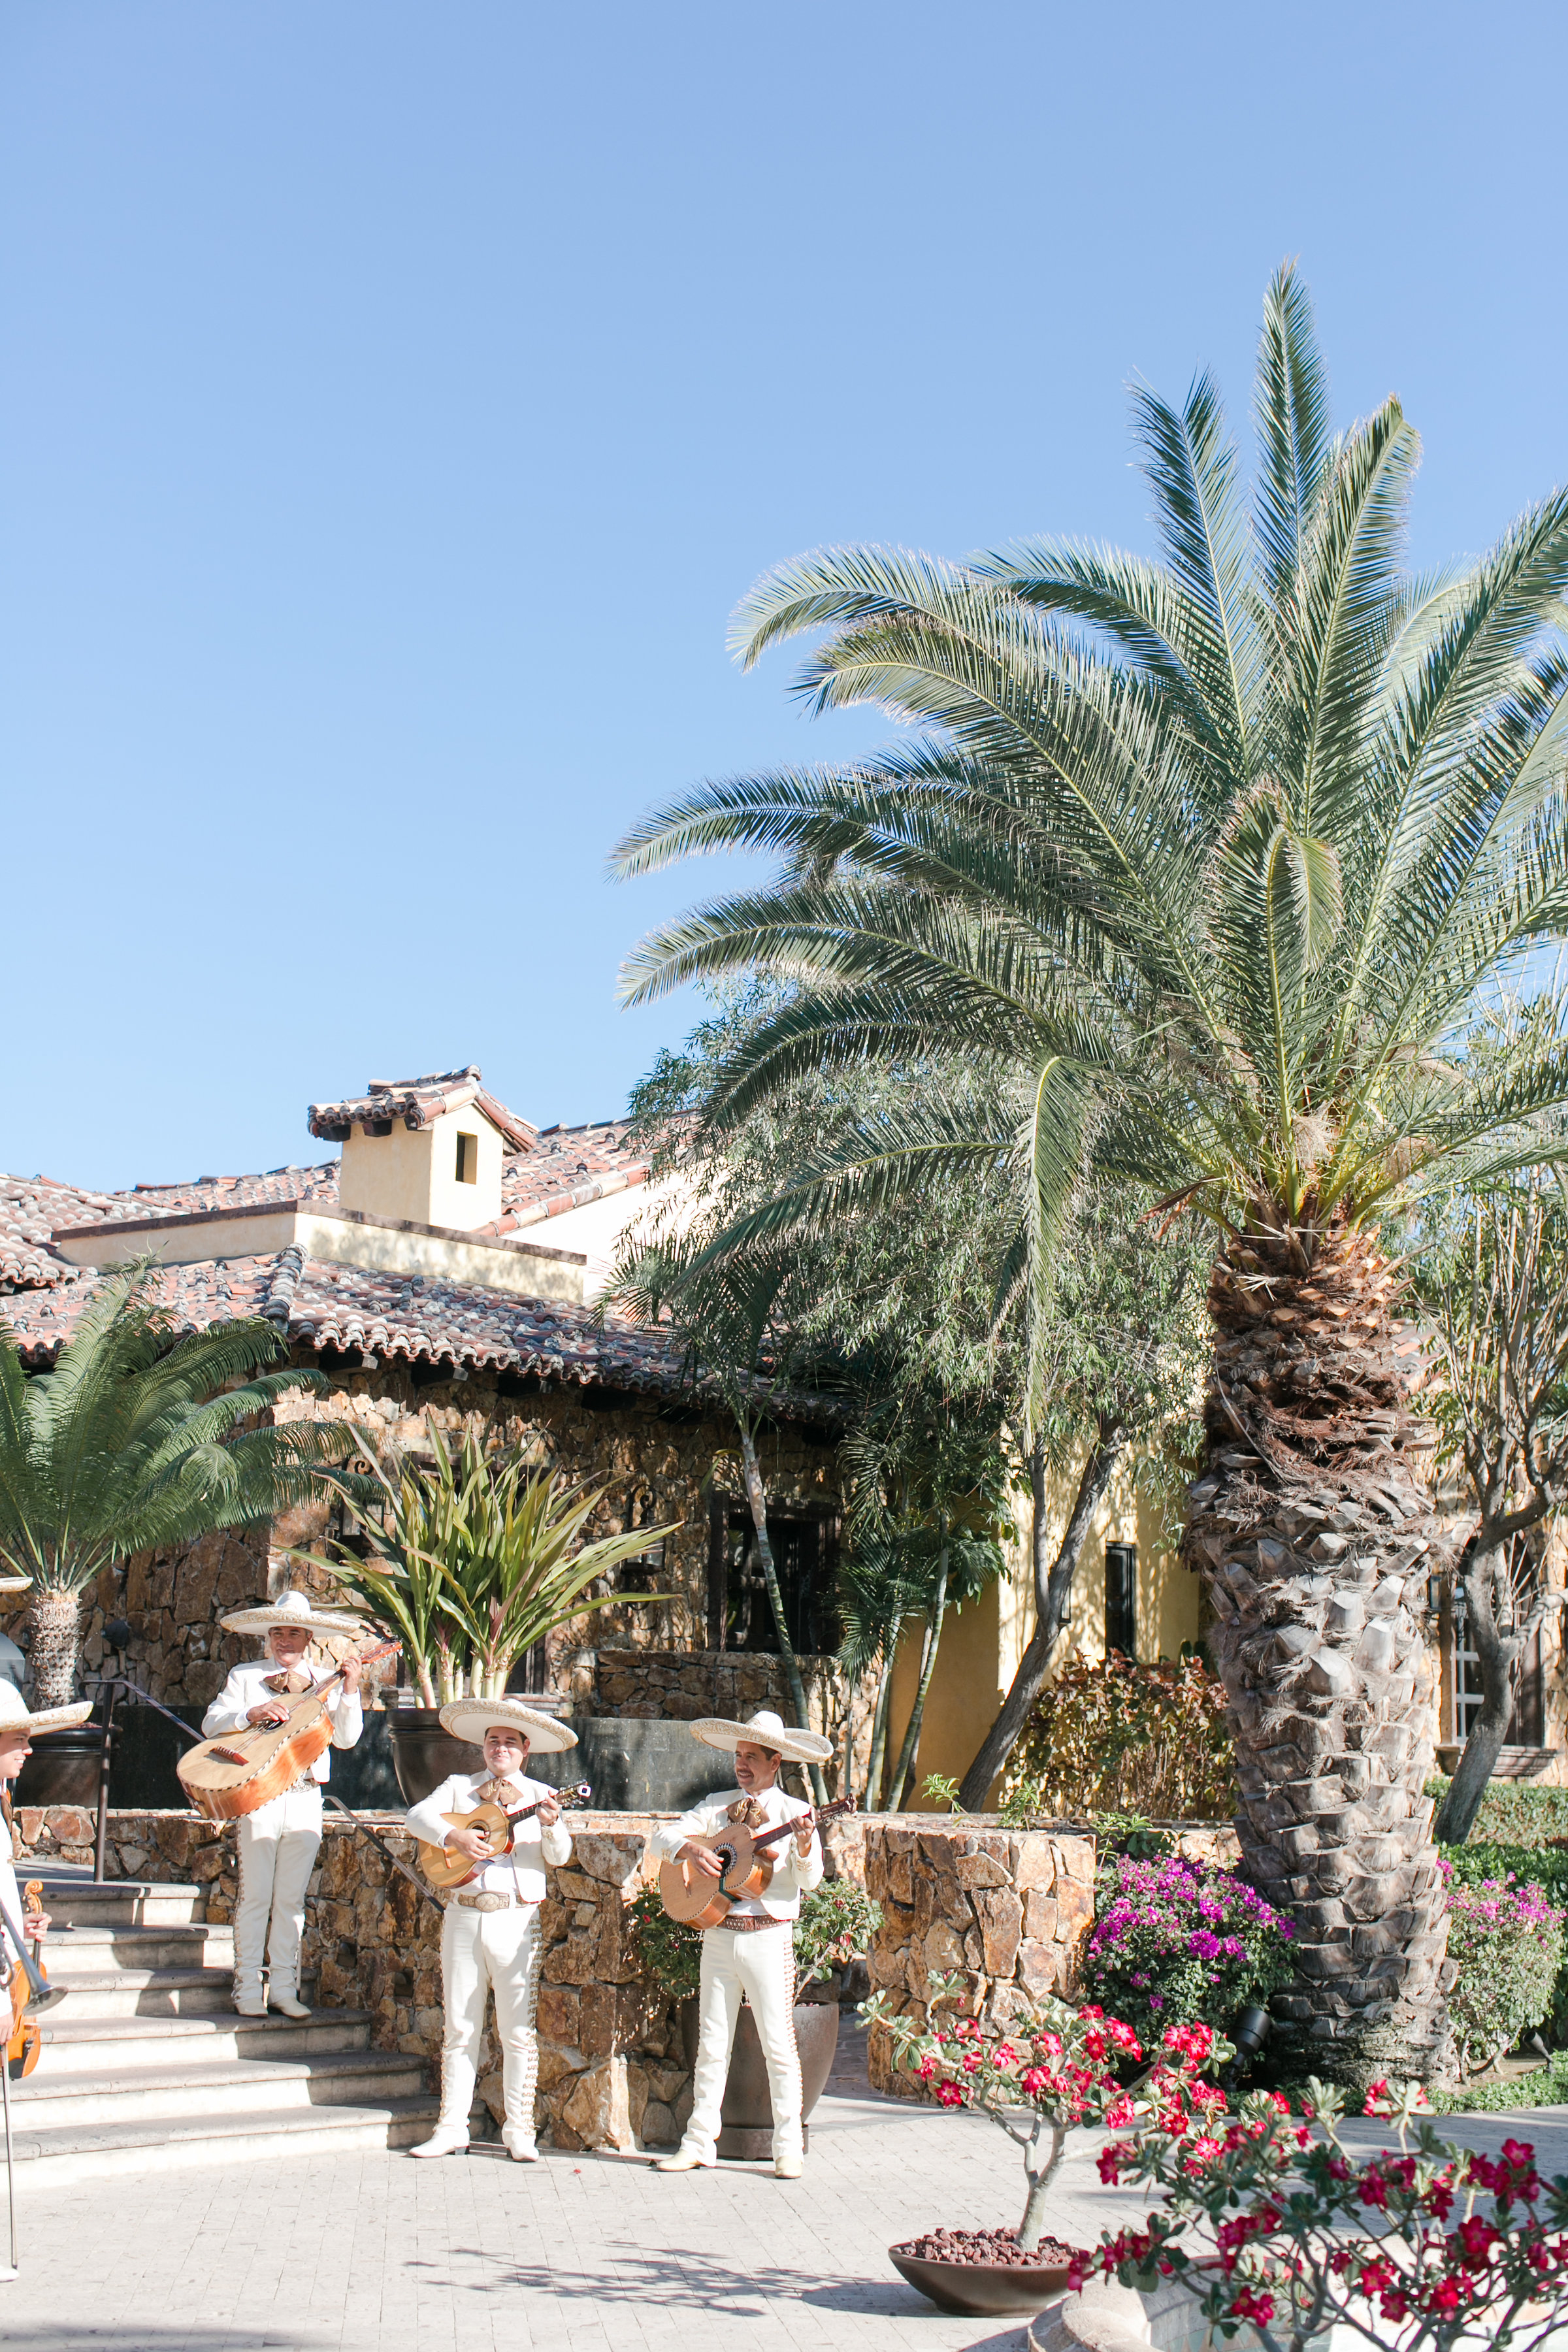 Venue Details - San Jose Del Cabo, Mexico - Spring Wedding - Julian Leaver Events